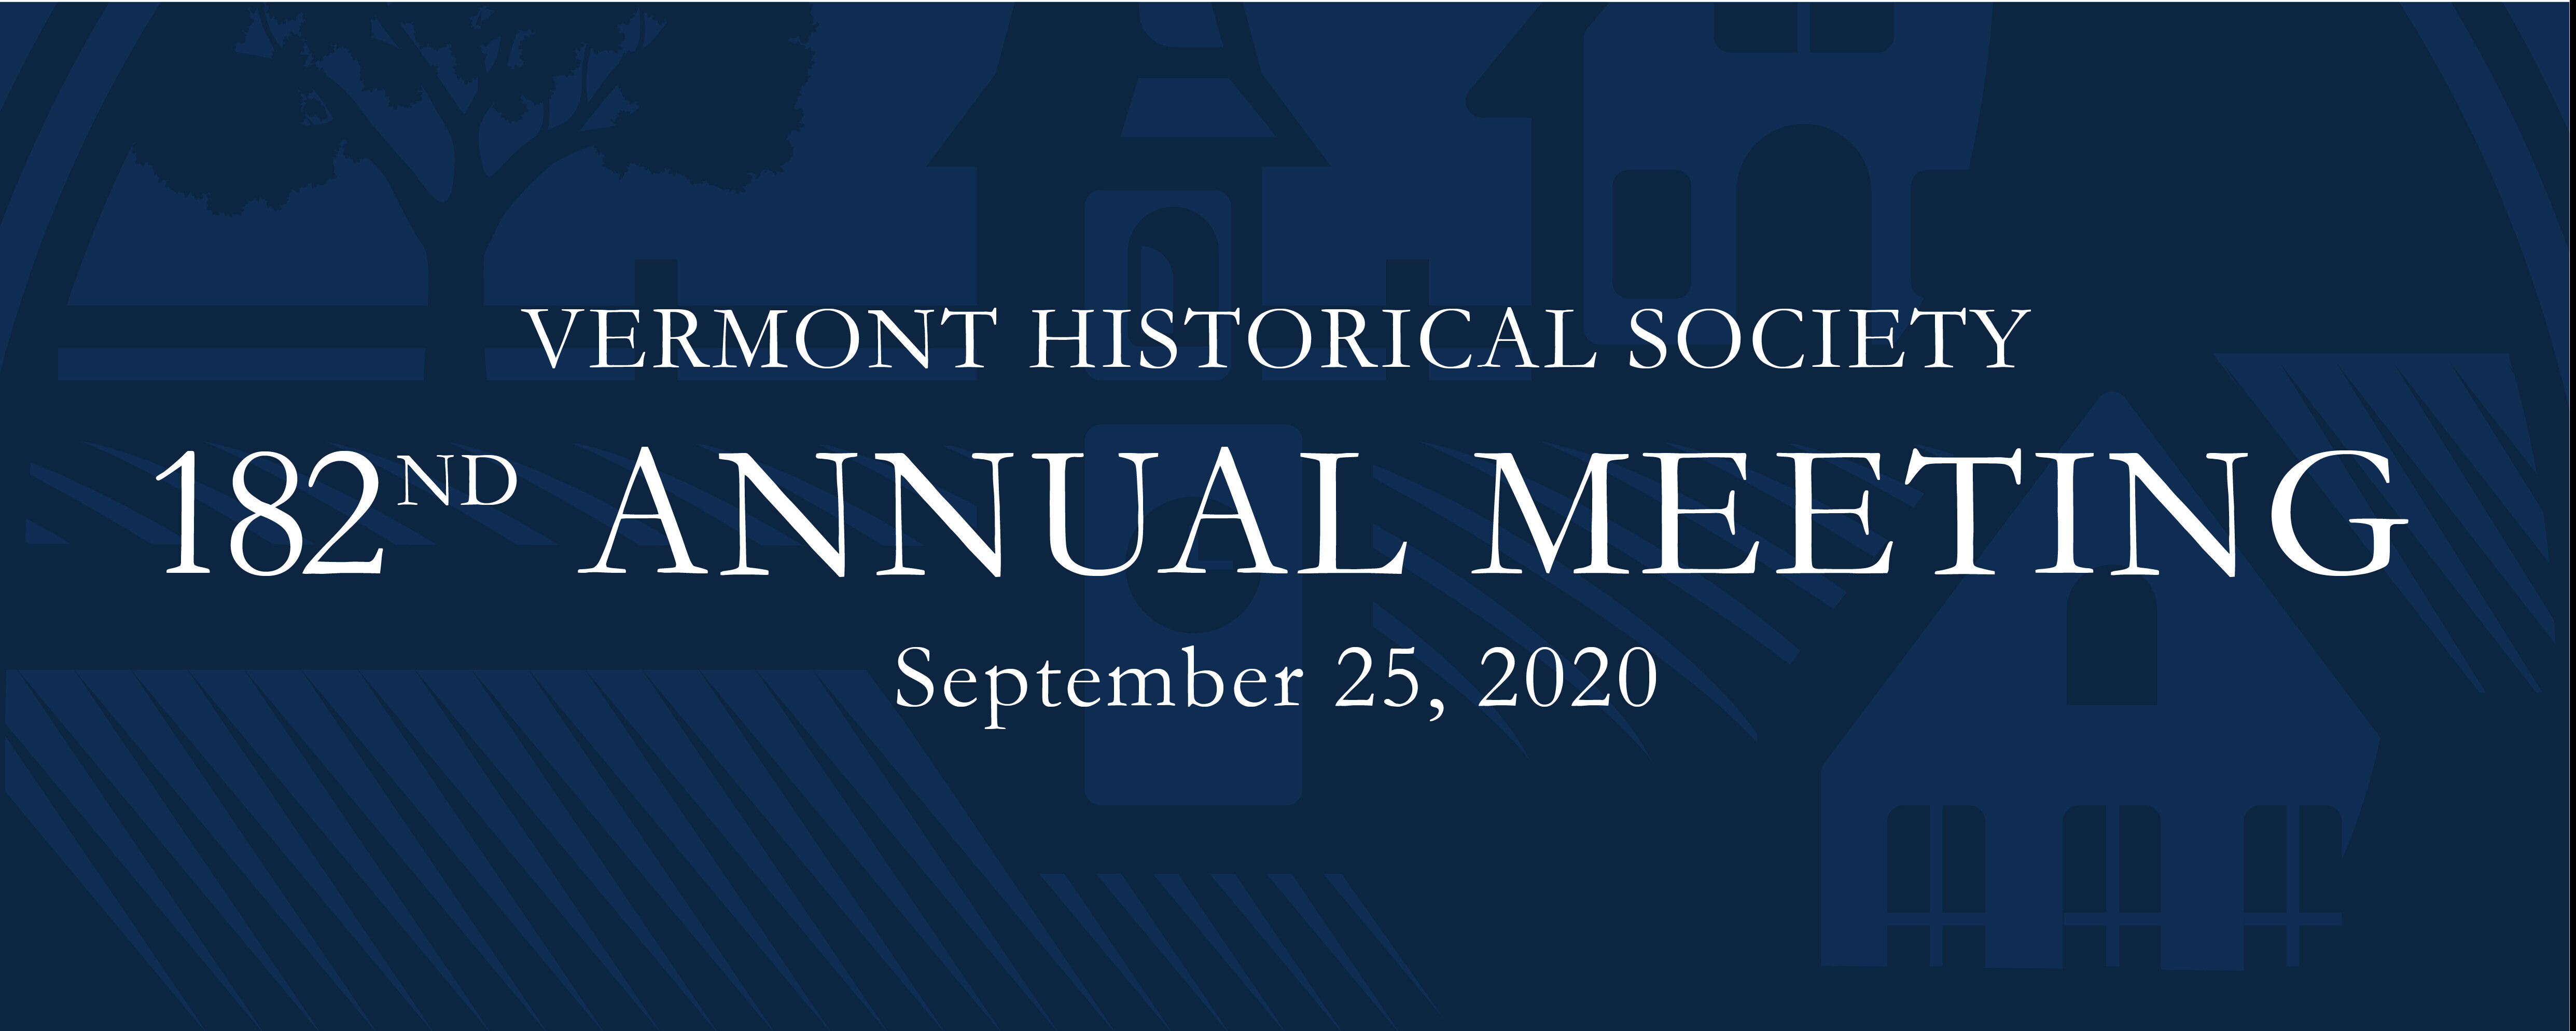 182nd Annual Meeting